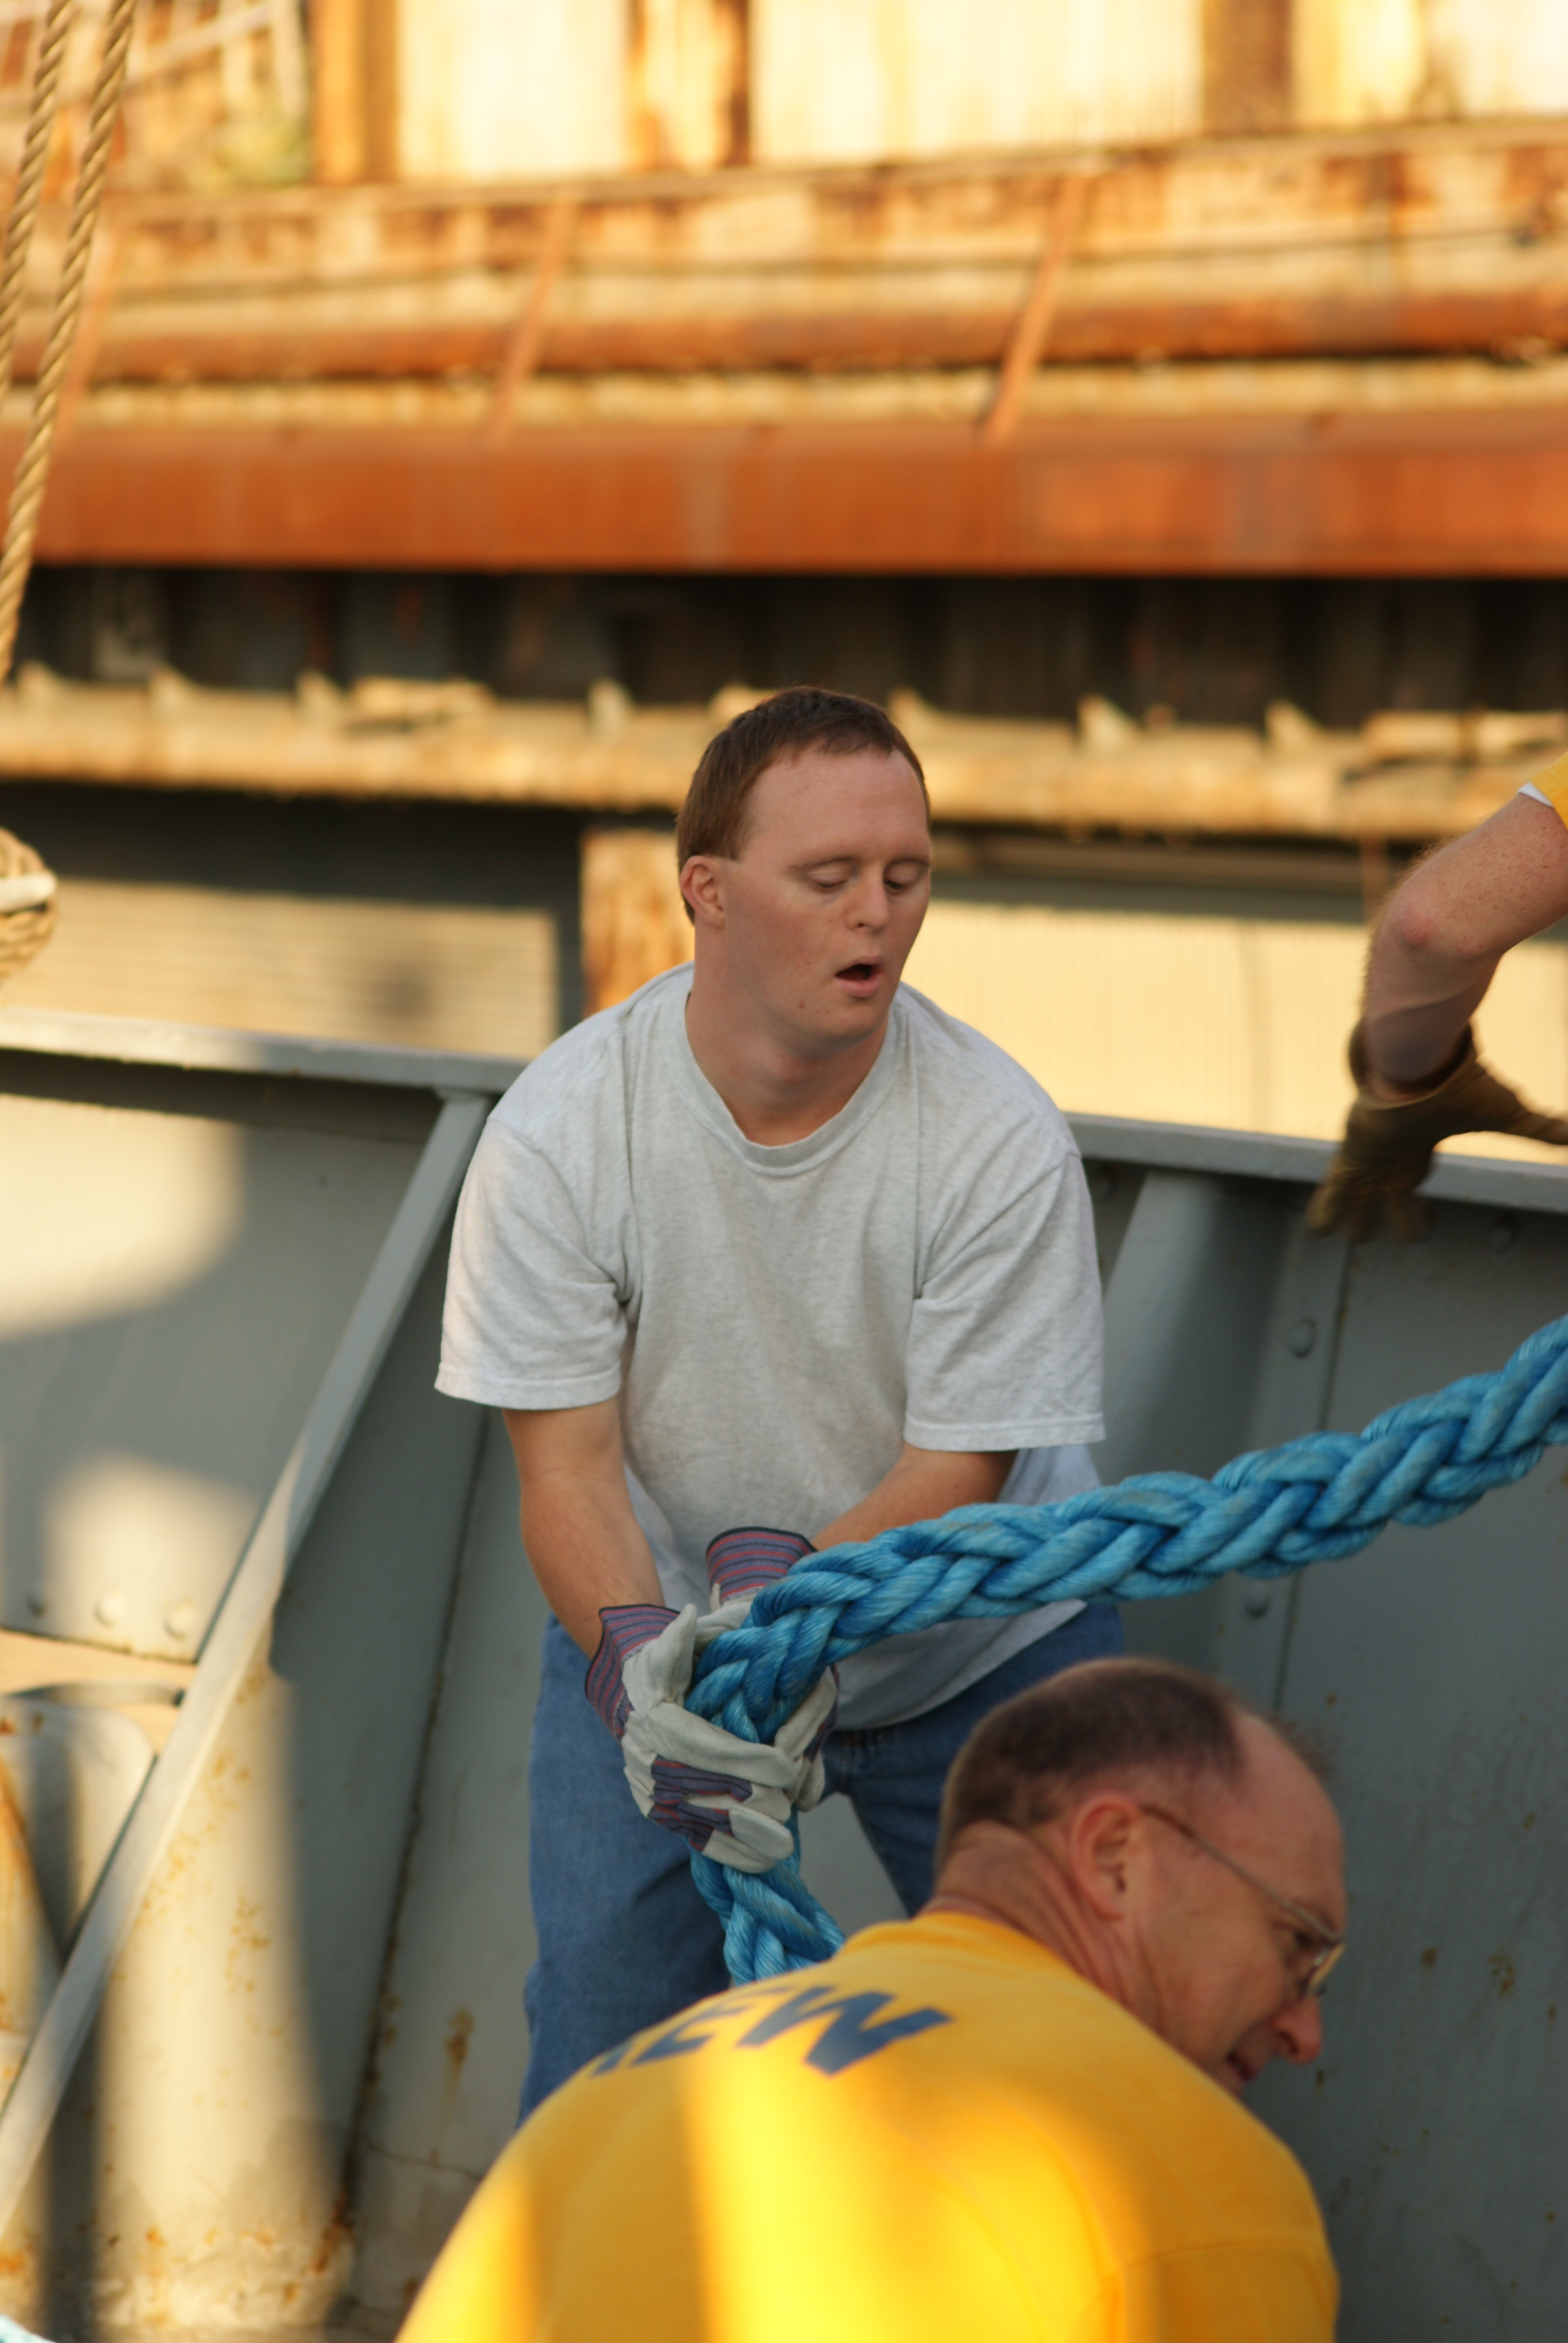 Howard (foreground) and his son Andrew (background) handling mooring lines while tying up the ship.